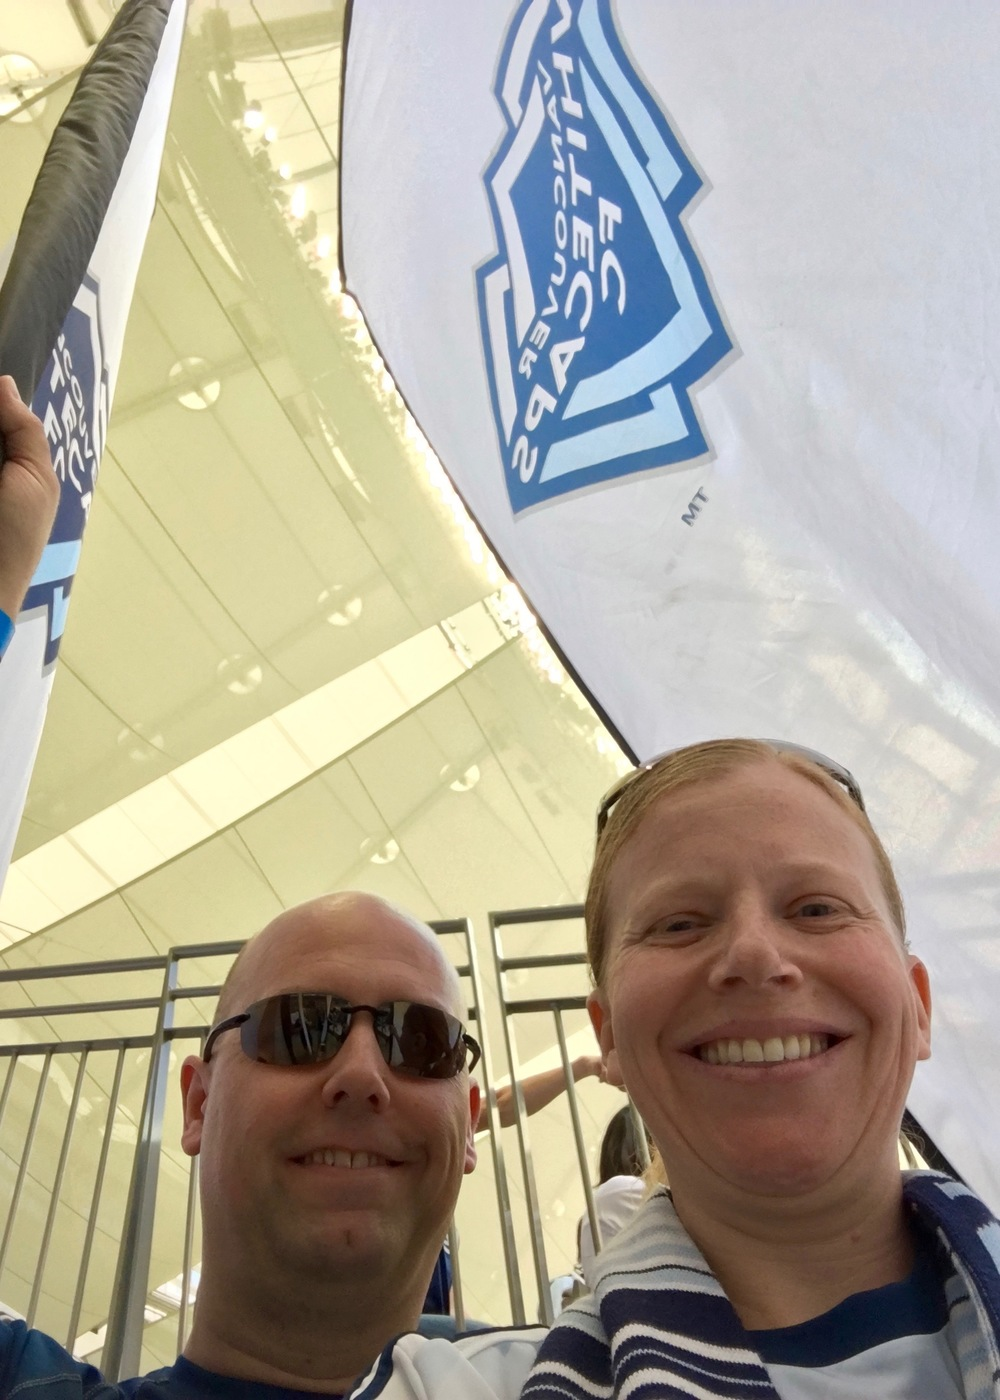 Justine and I with the Whitecaps flags before the game!